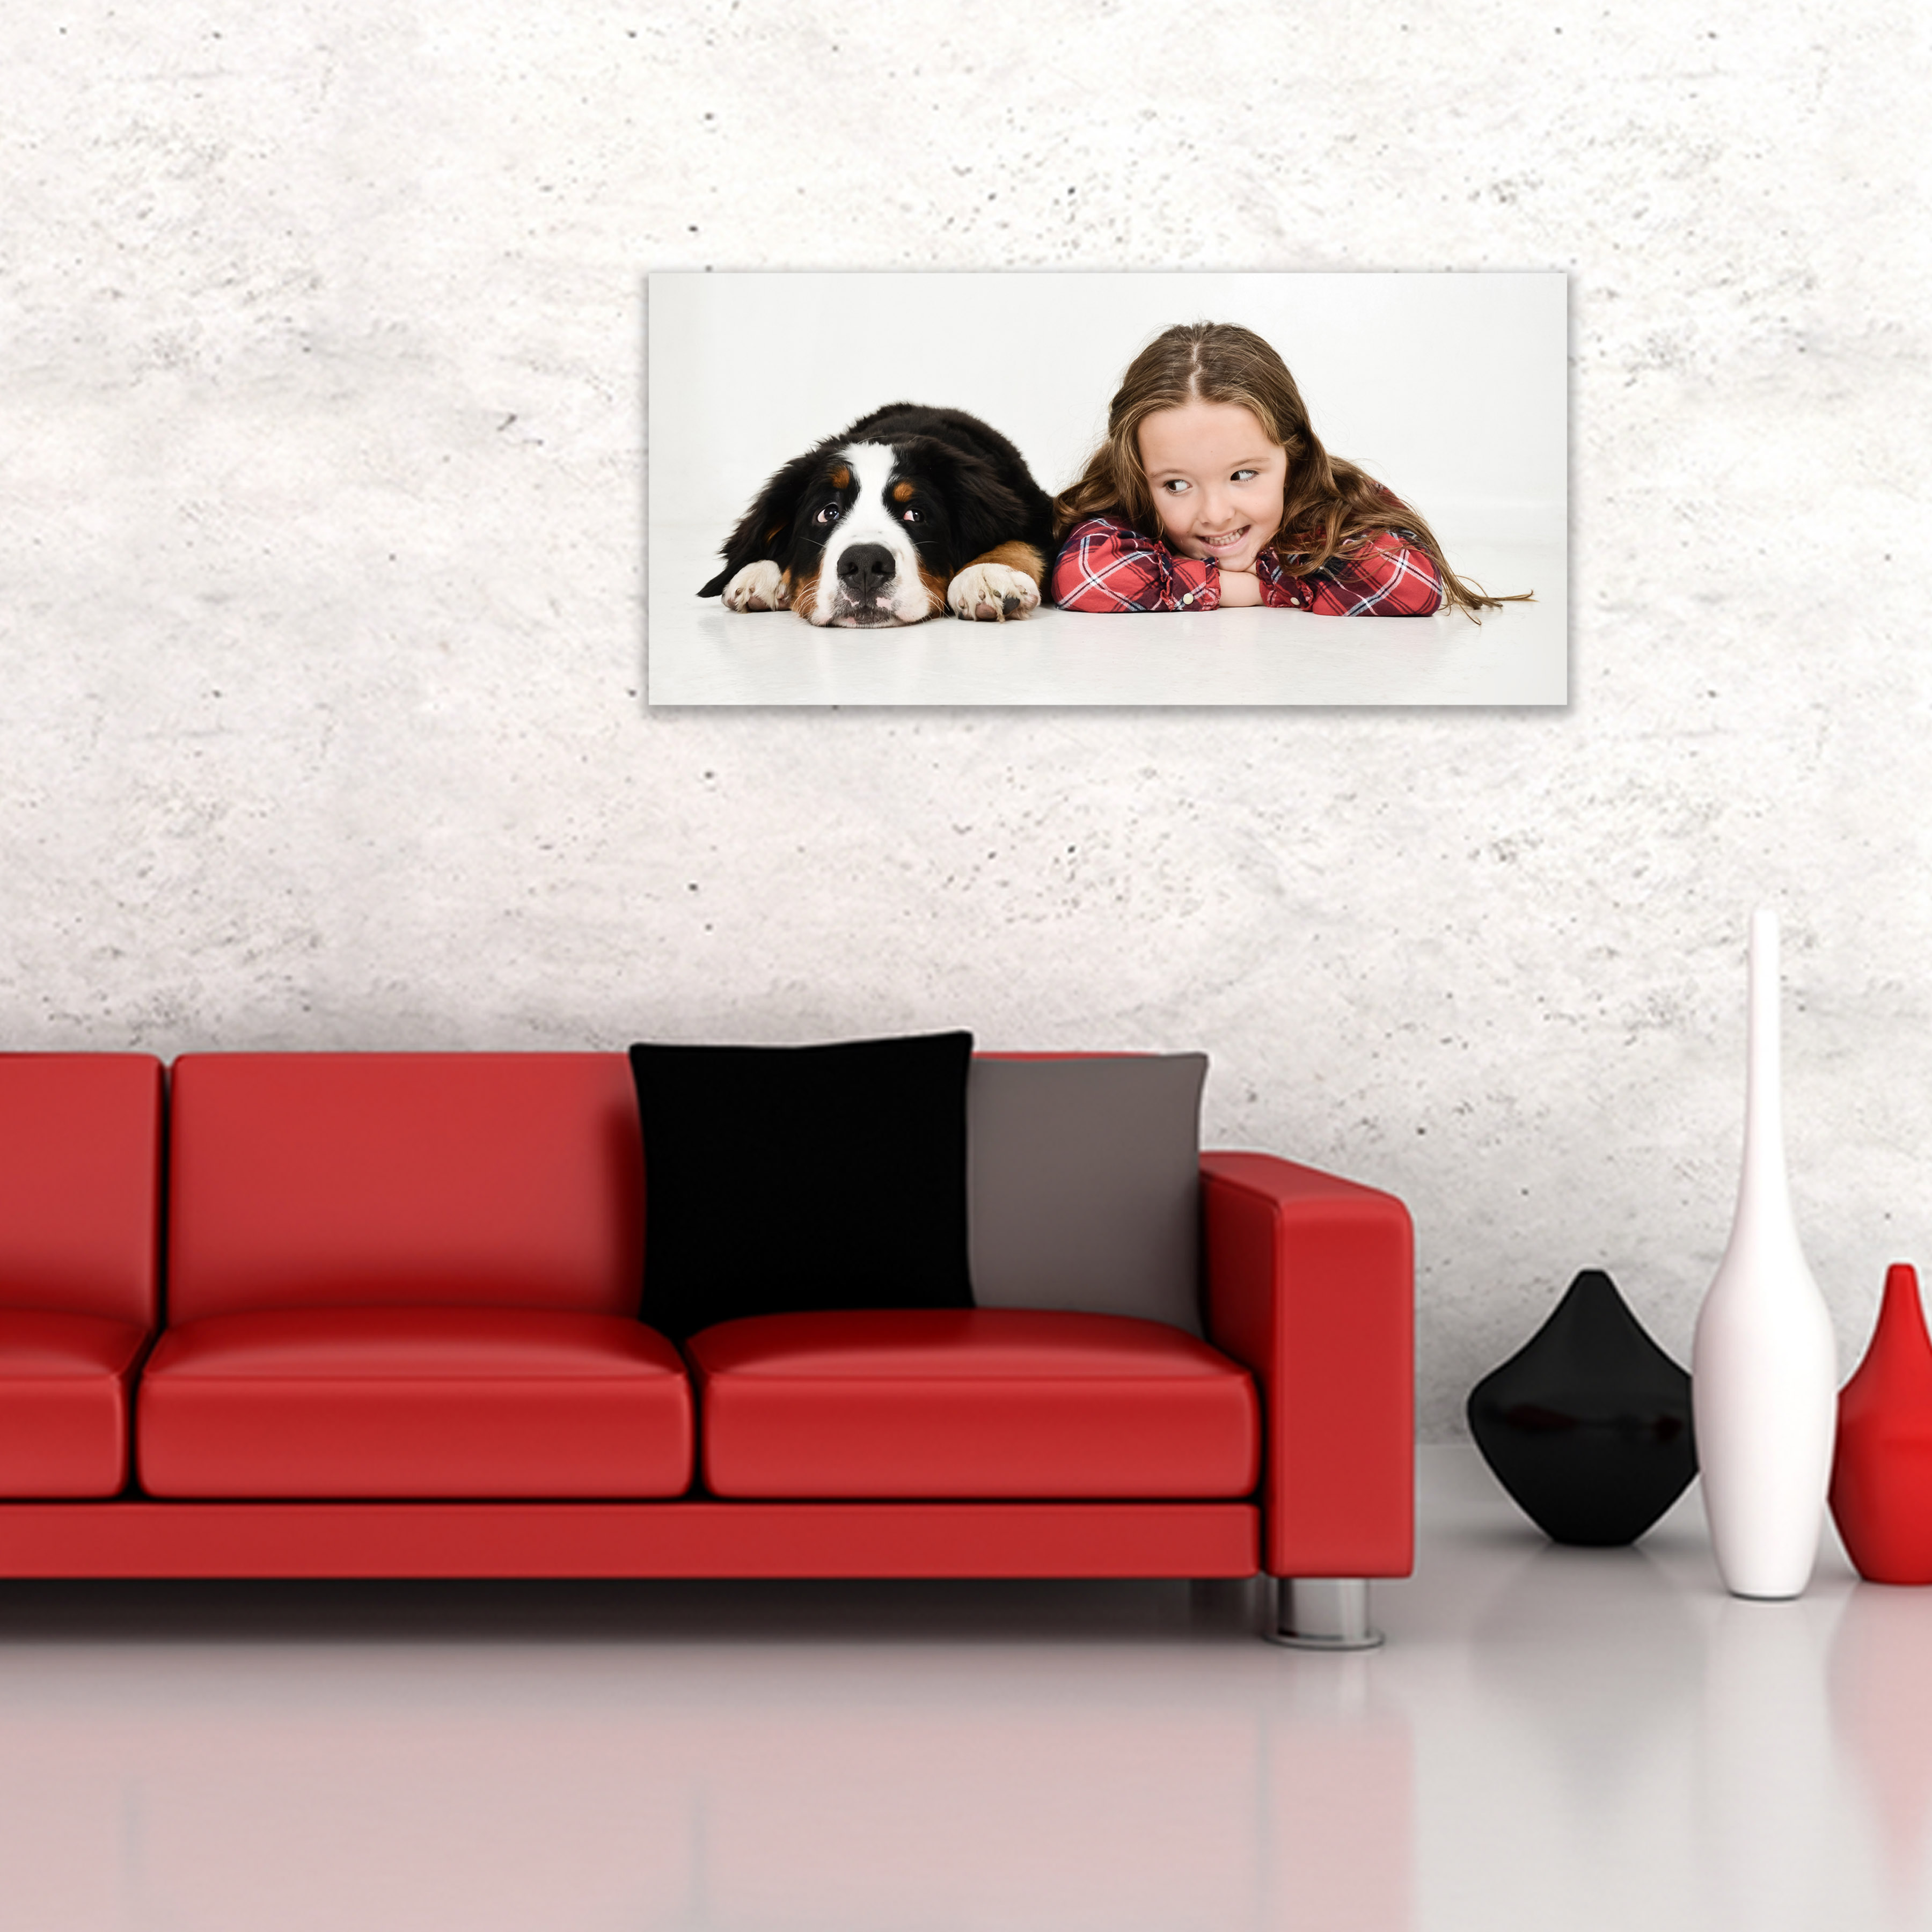 wall-portrait-in-living-room-02